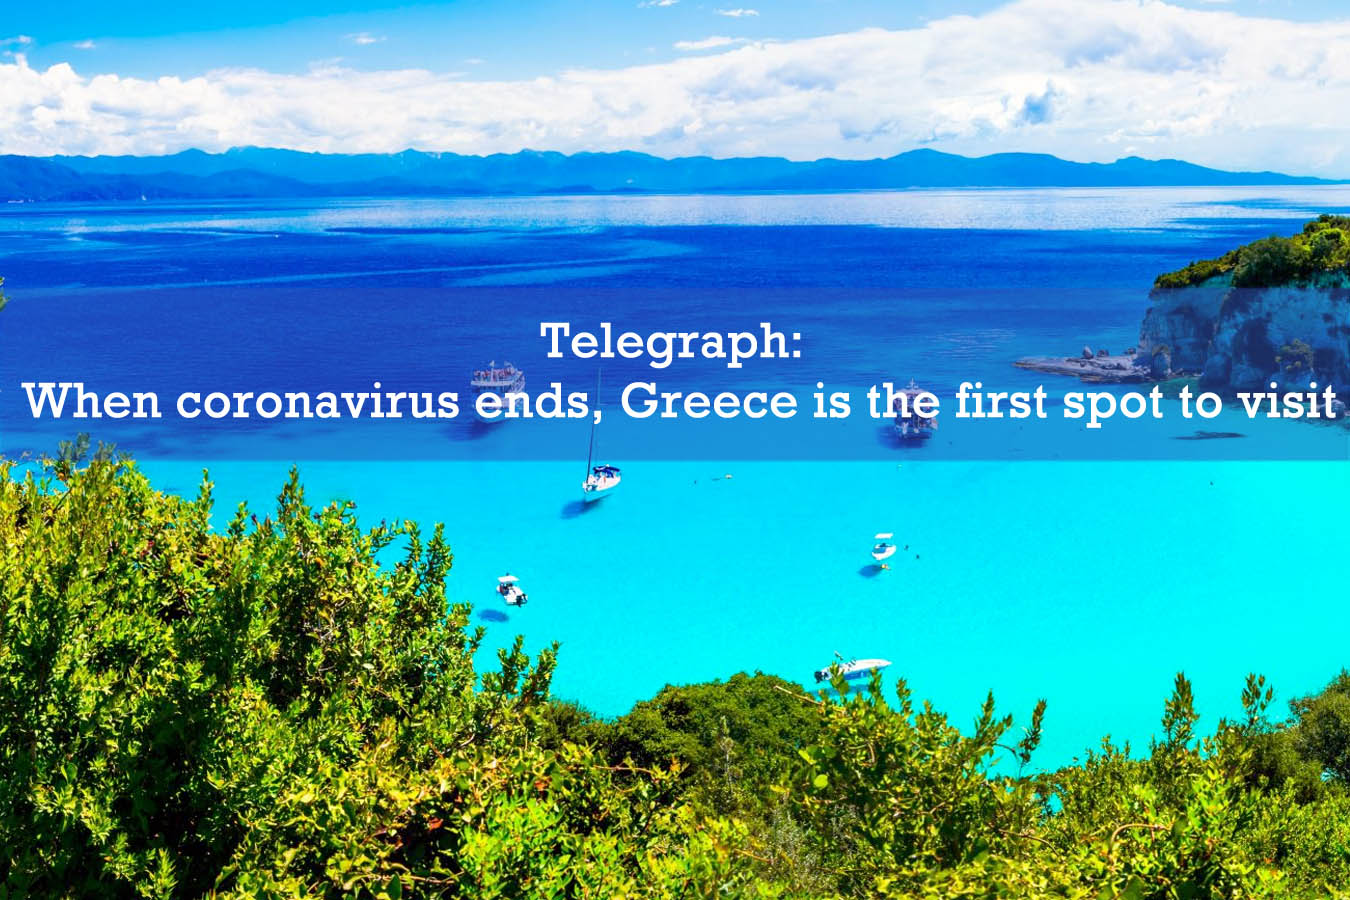 Telegraph: When coronavirus ends, Greece is the first spot to visit